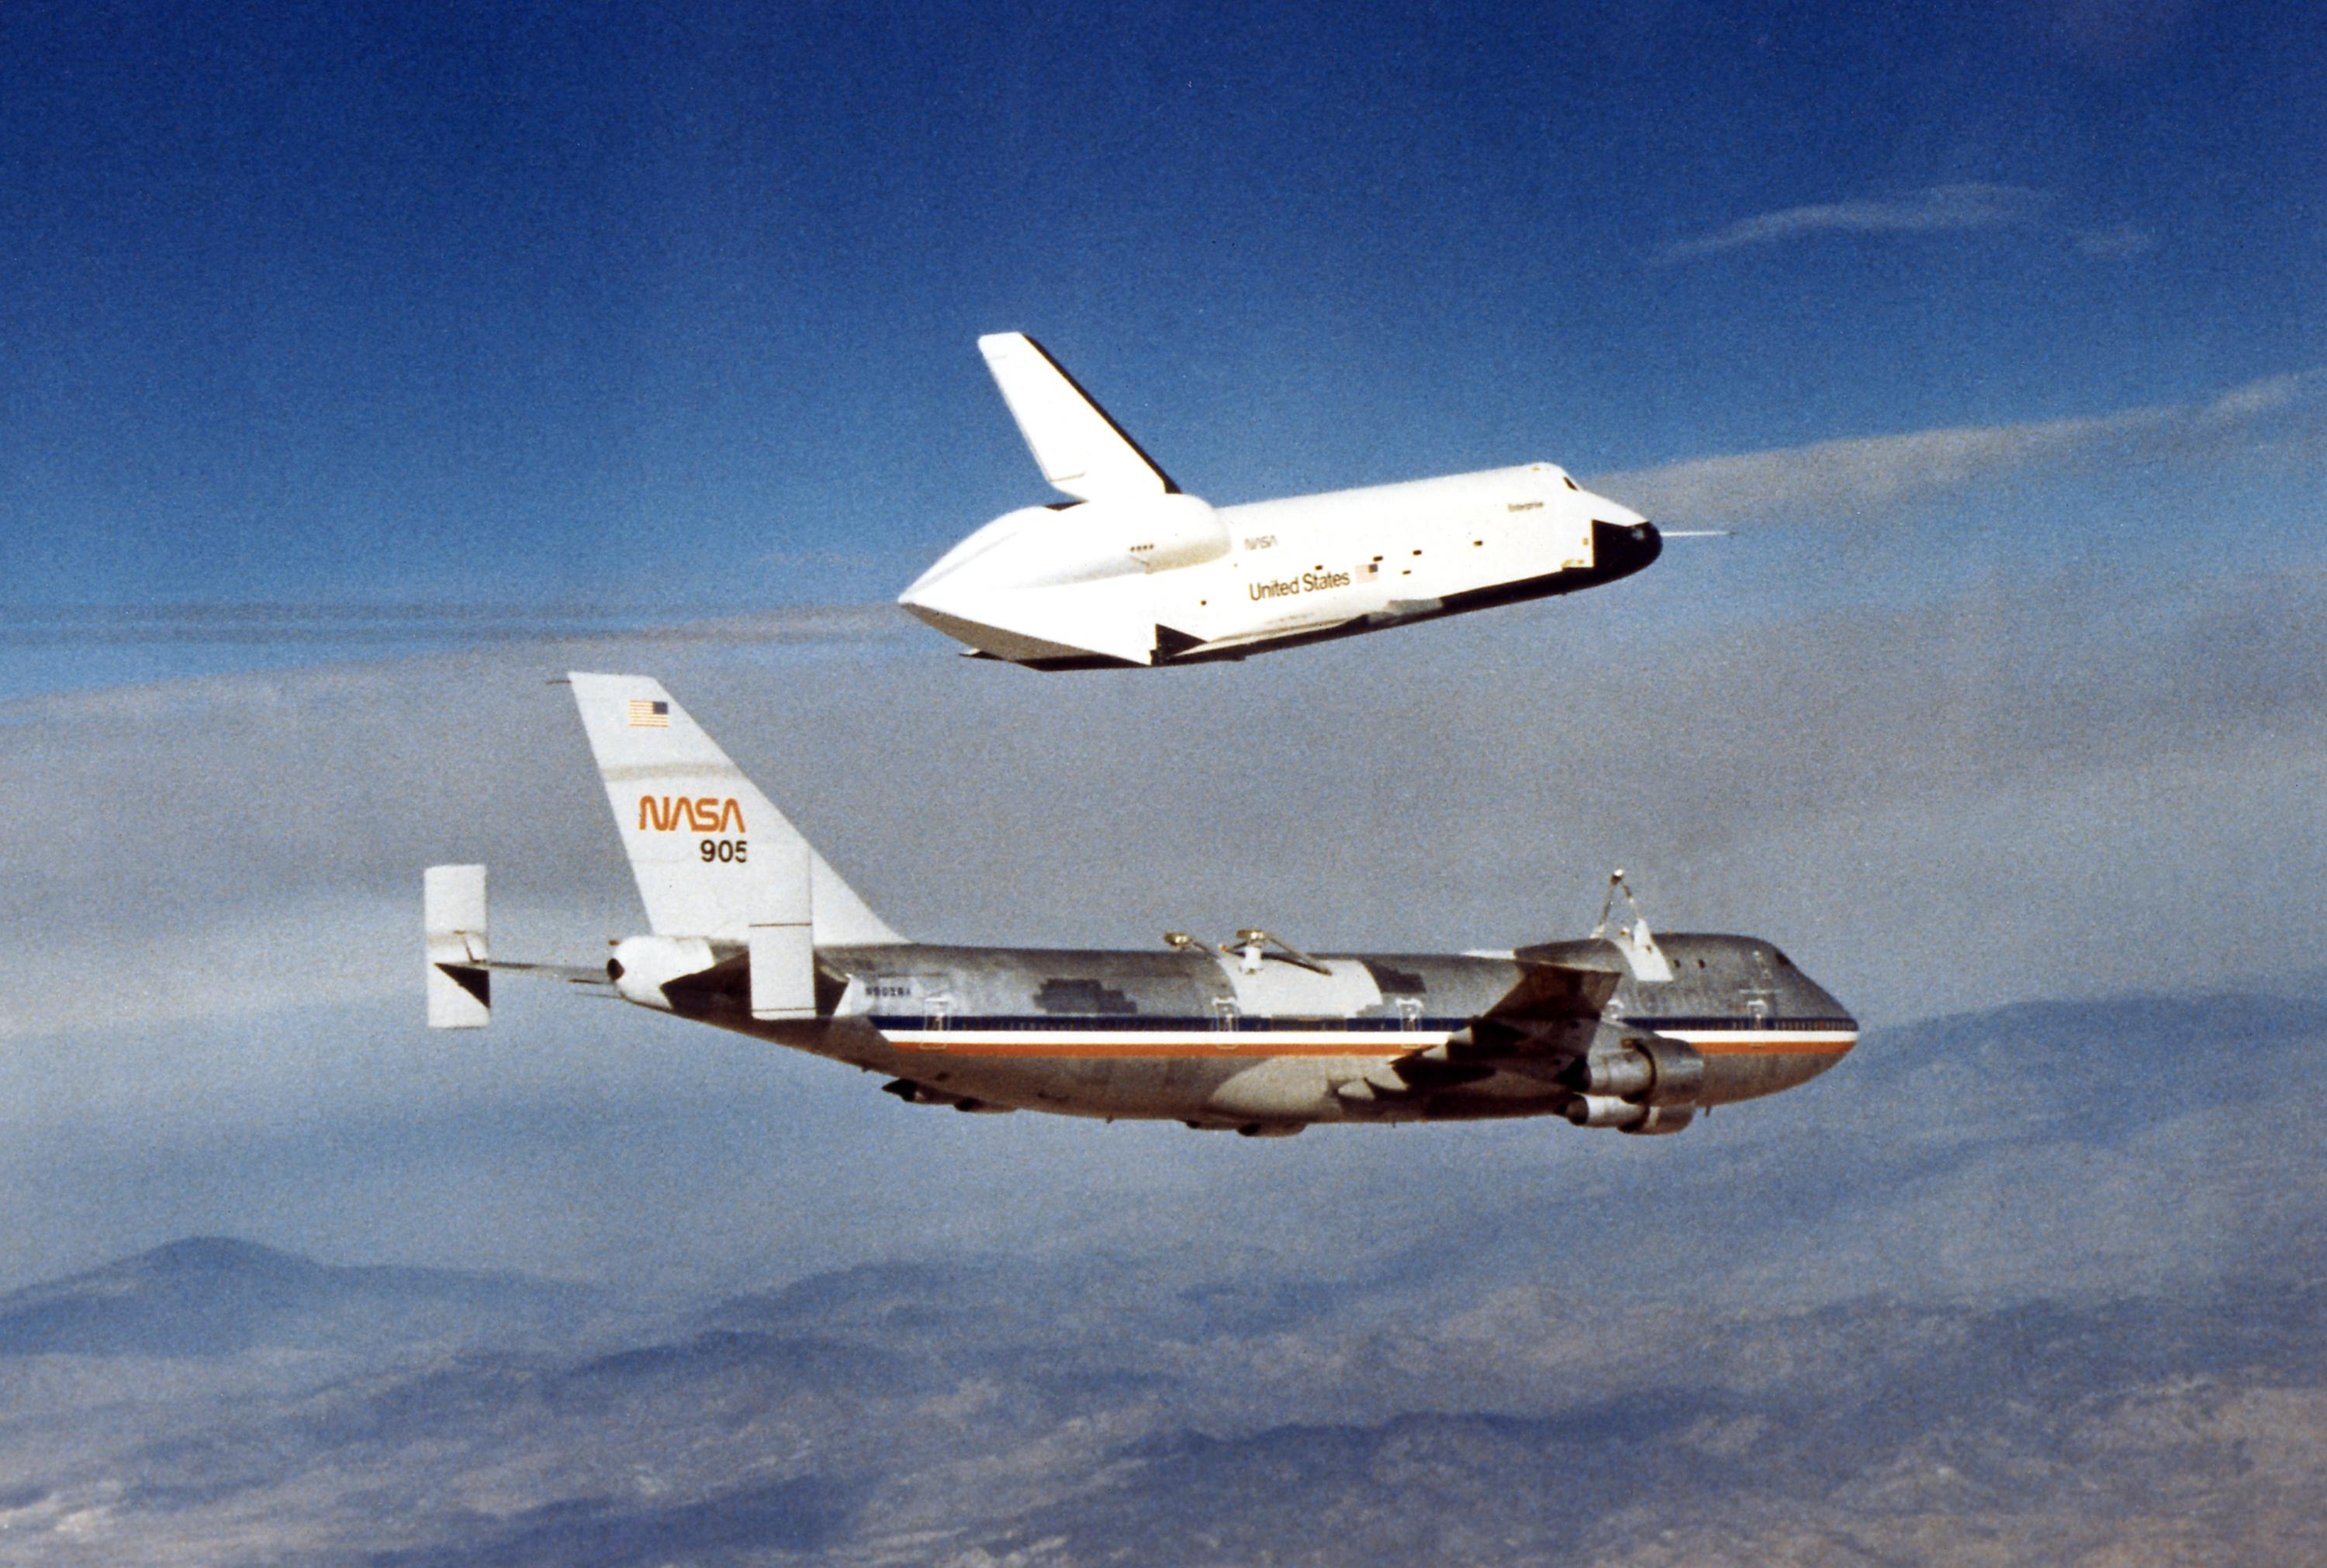 space shuttle fleet names - photo #40